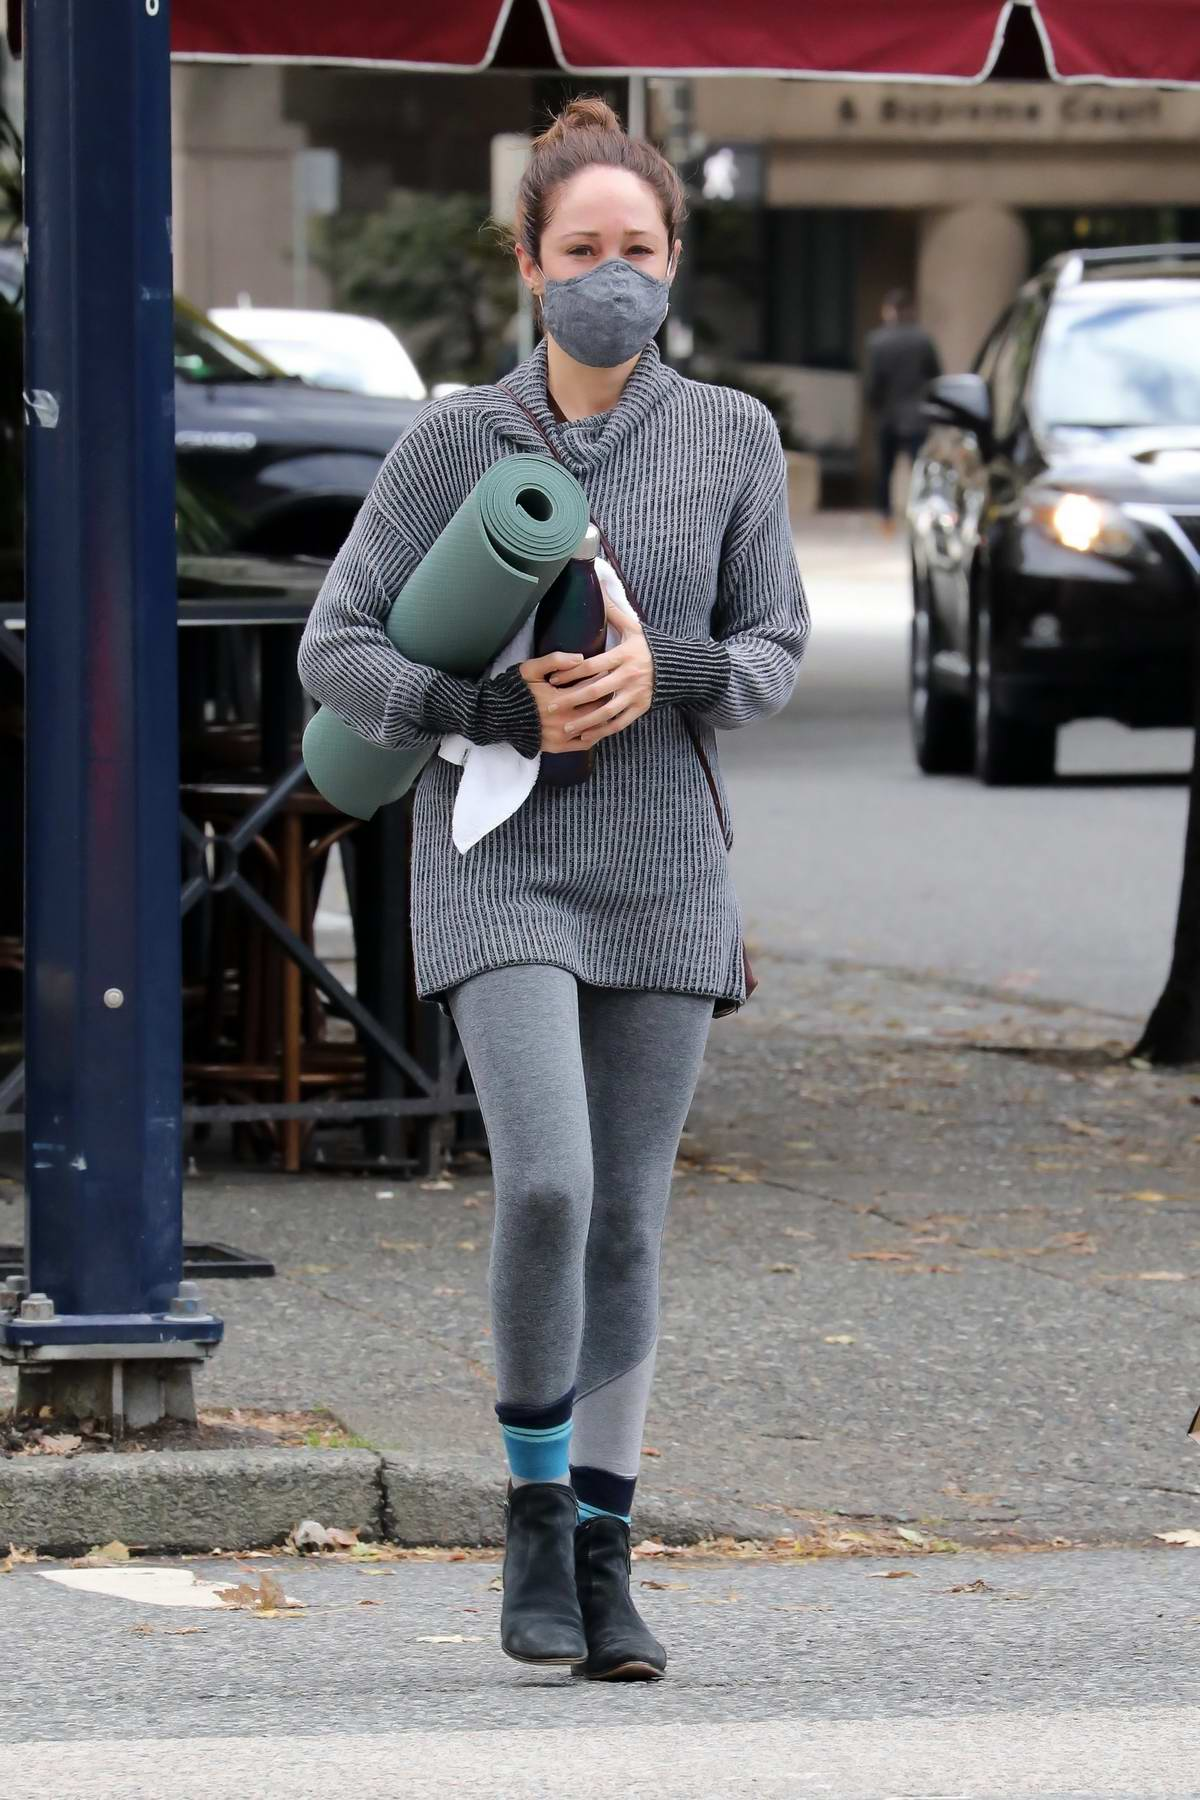 Autumn Reeser attends a yoga class on a day off filming a Hallmark Christmas movie in Vancouver, Canada